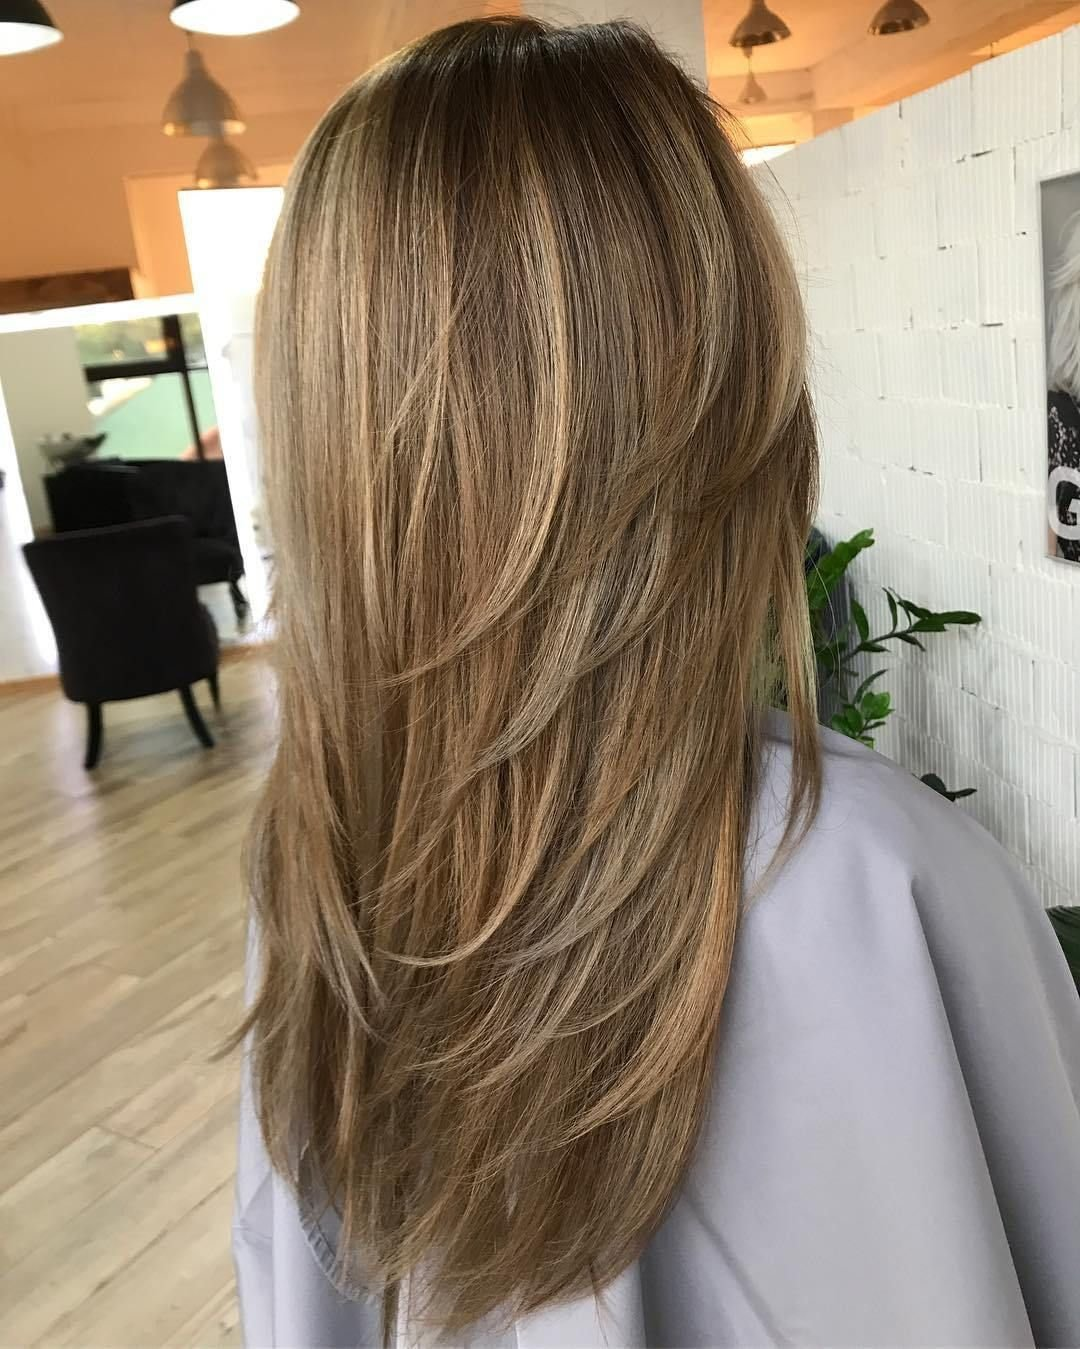 The Best 80 Cute Layered Hairstyles And Cuts For Long Hair 2018 Pictures